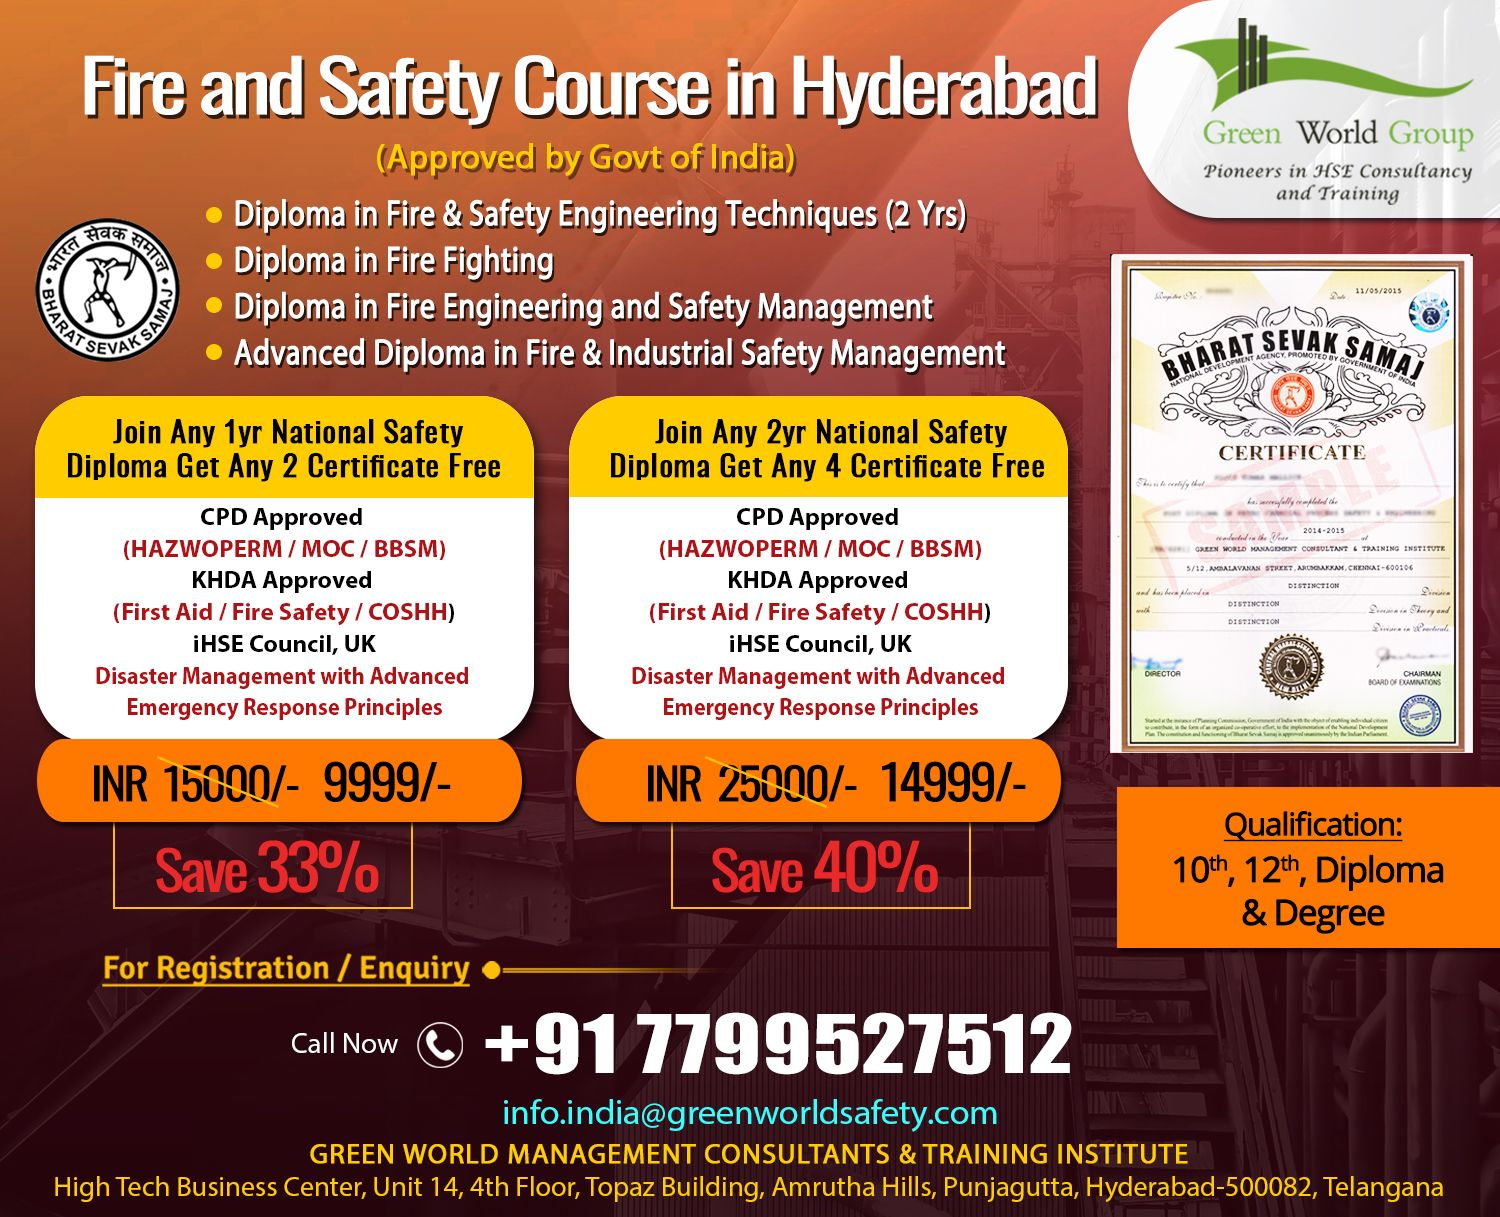 Govt approved fire and safety courses in hyderabad